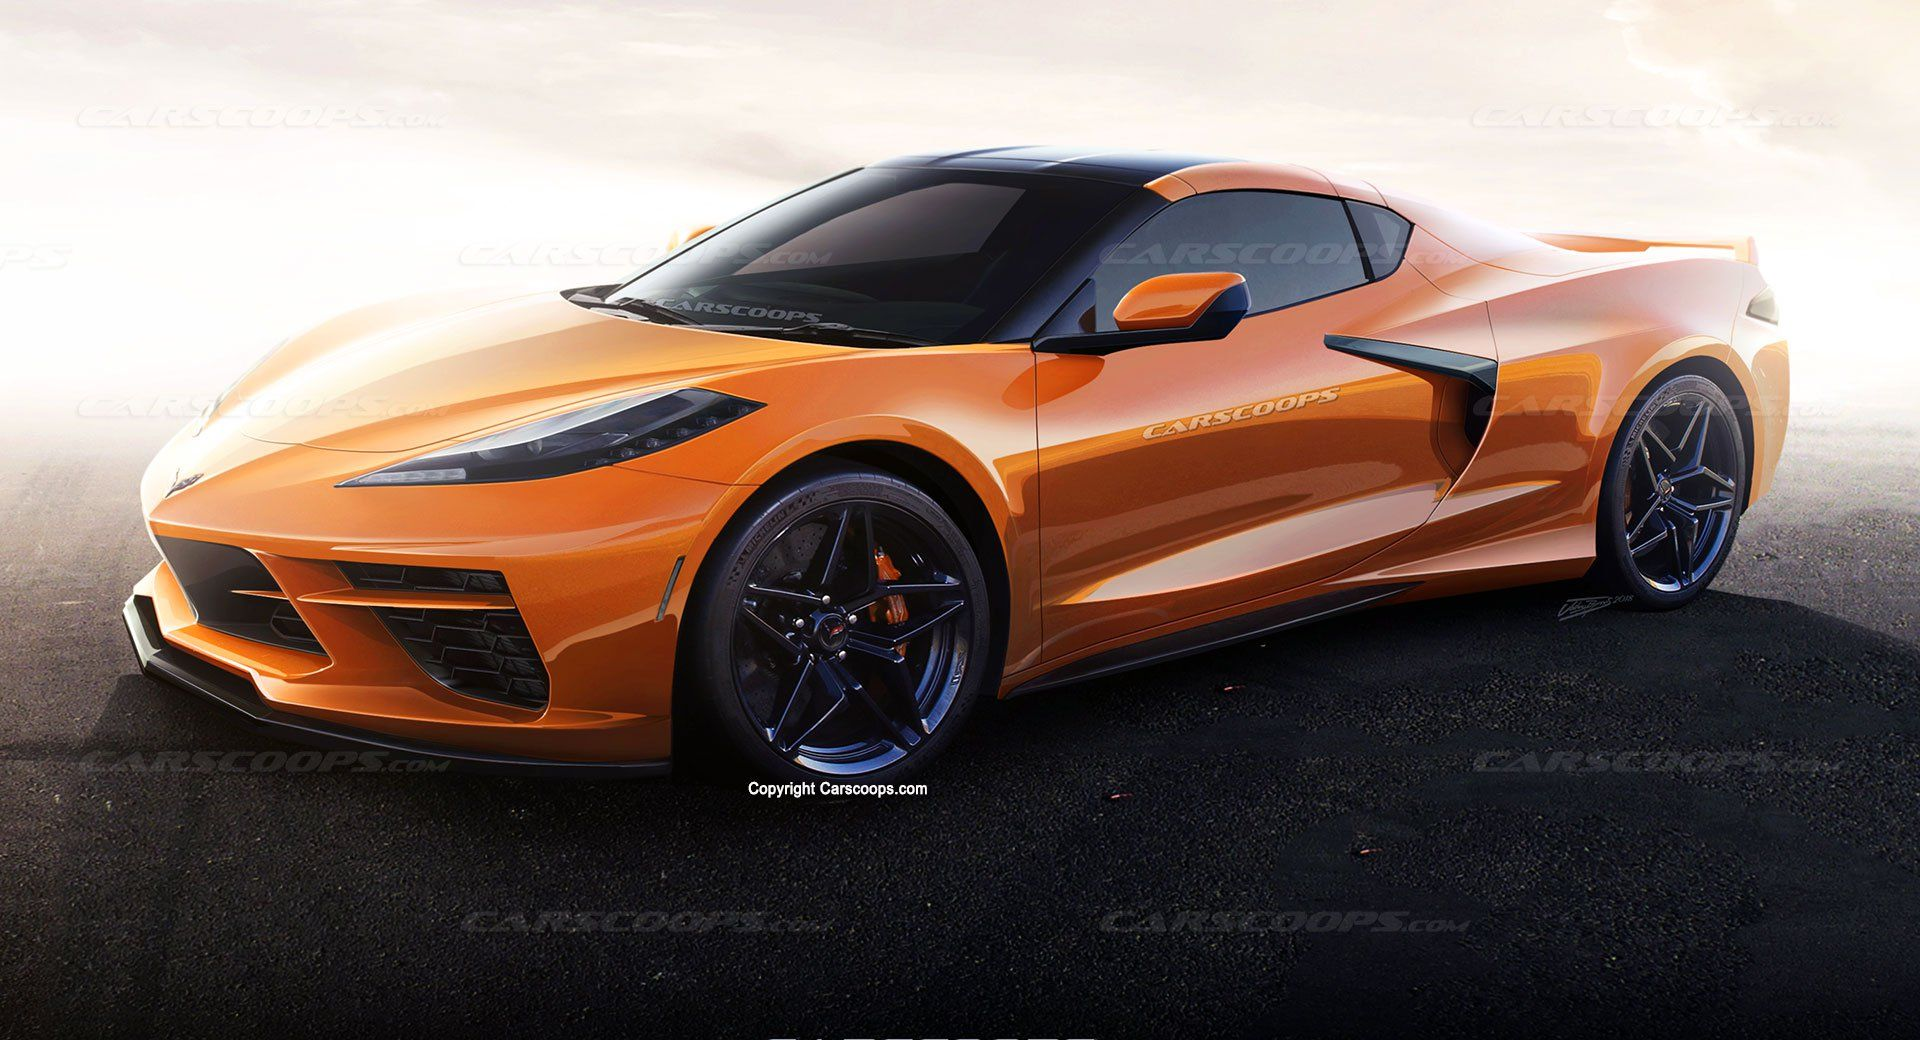 2020 Corvette C8 This Is What It'll Look Like, And What